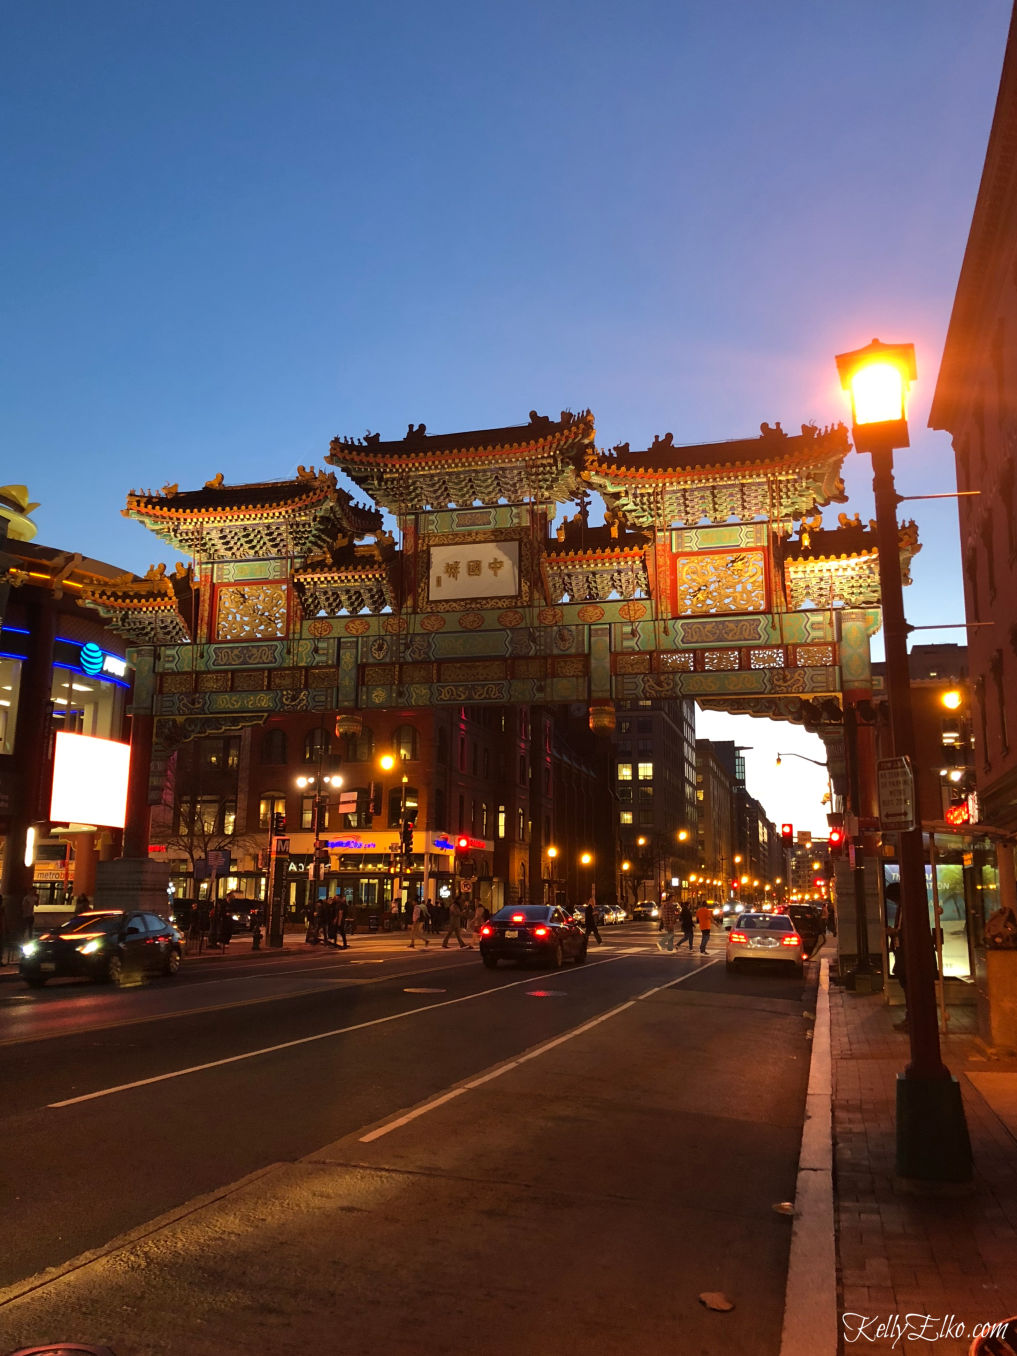 Weekend in Washington DC - Chinatown is such a fun part of town kellyelko.com #chinatown #friendshiparchway #travel #travelblogger #washingtondc #dc #vacation #familytravel #getaway #escape